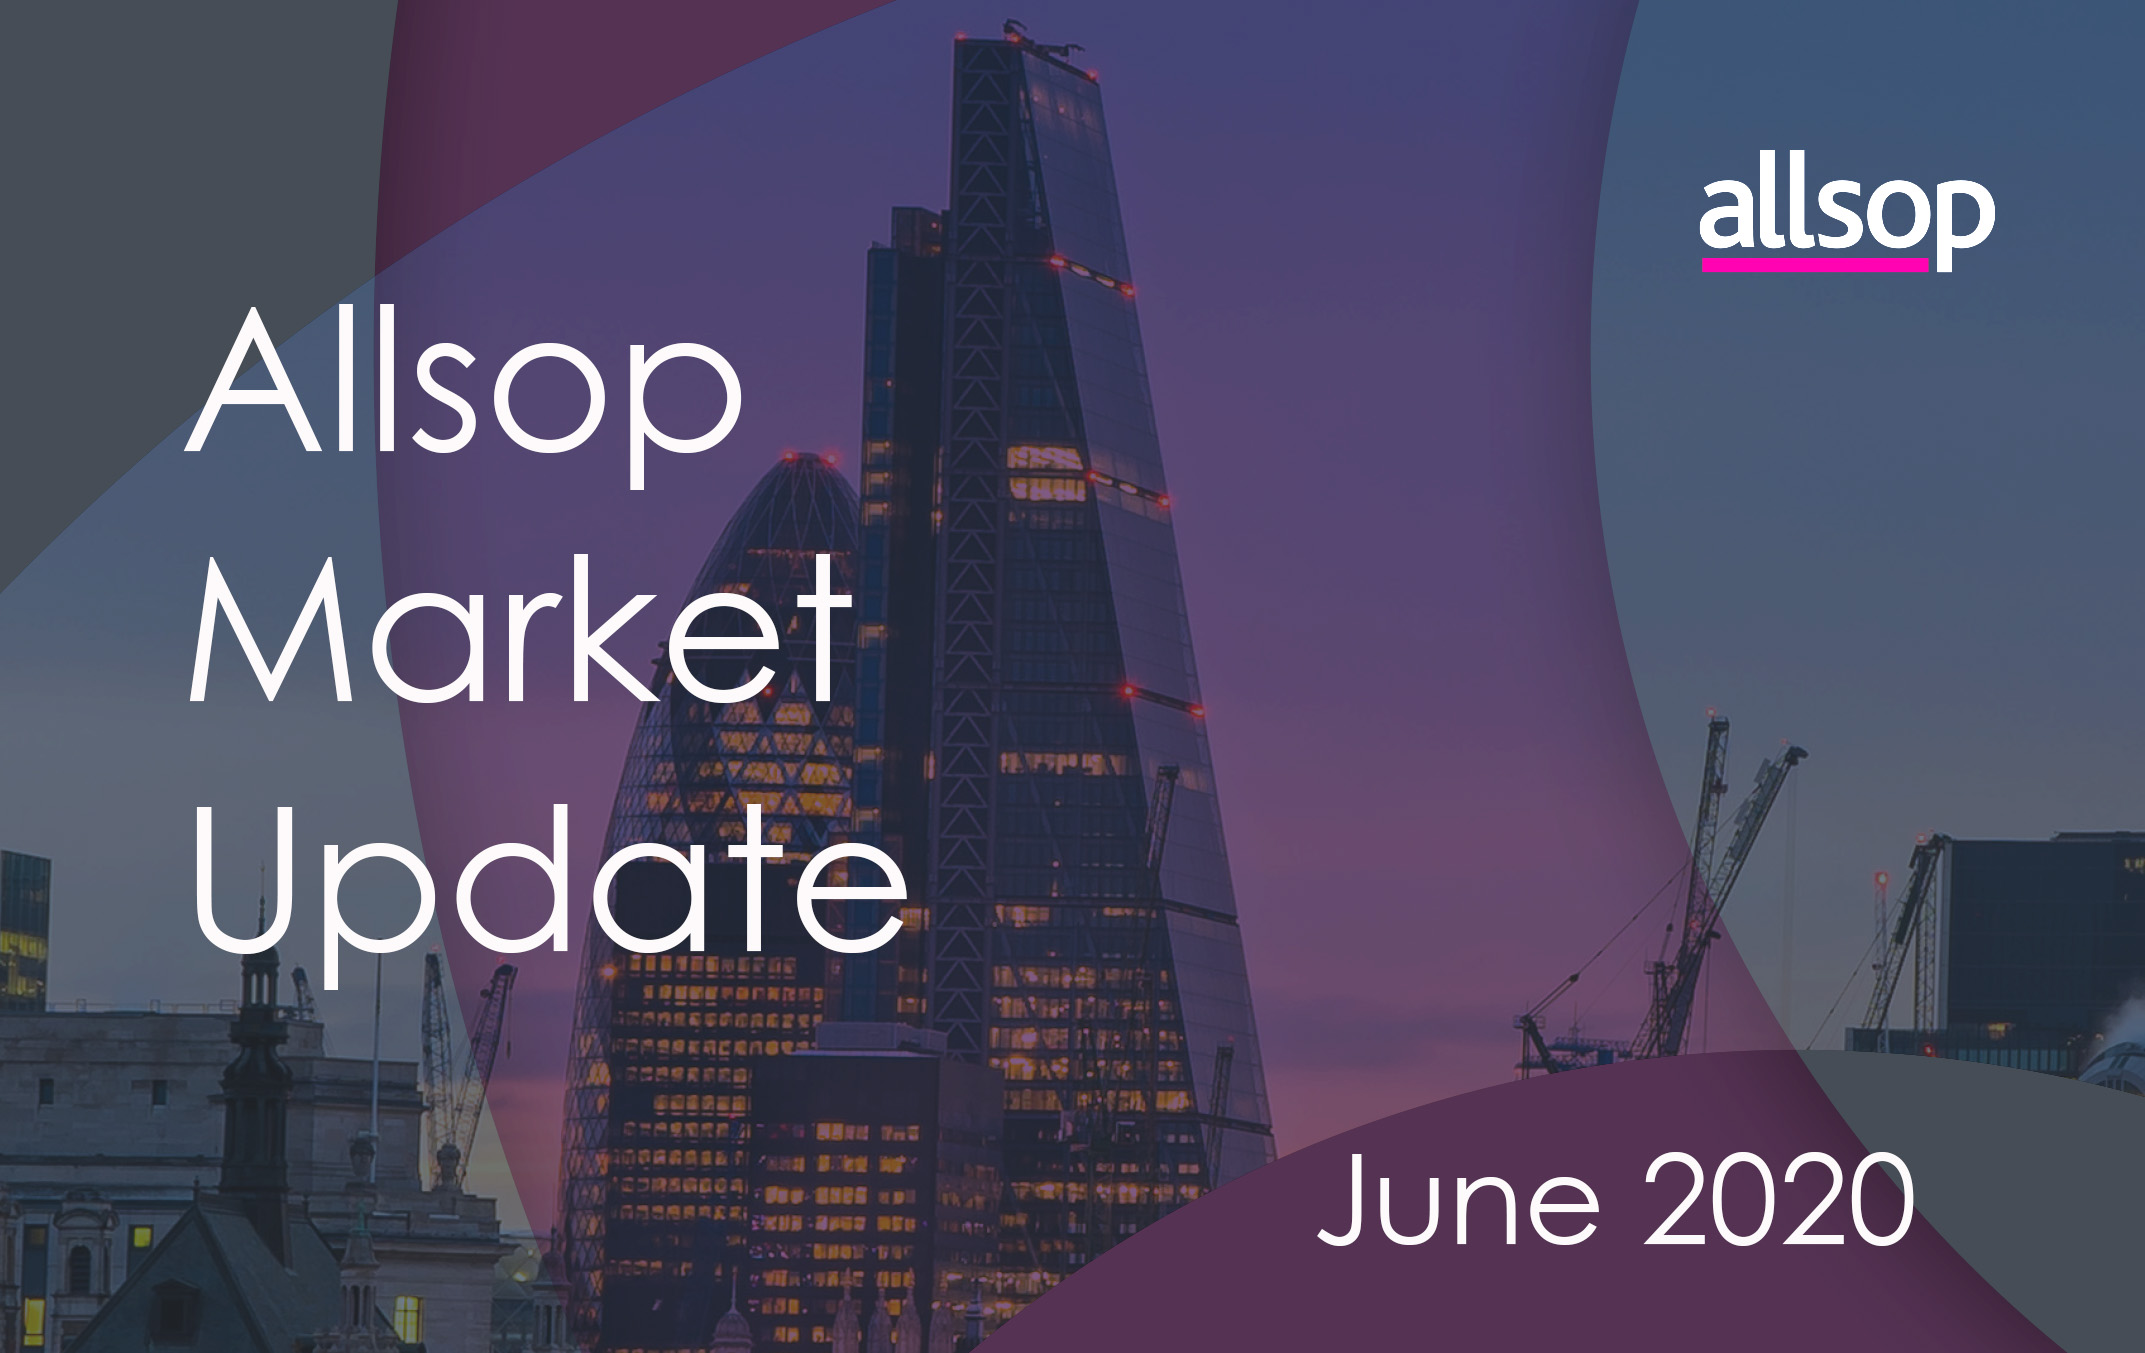 Allsop Property Market Update June 2020